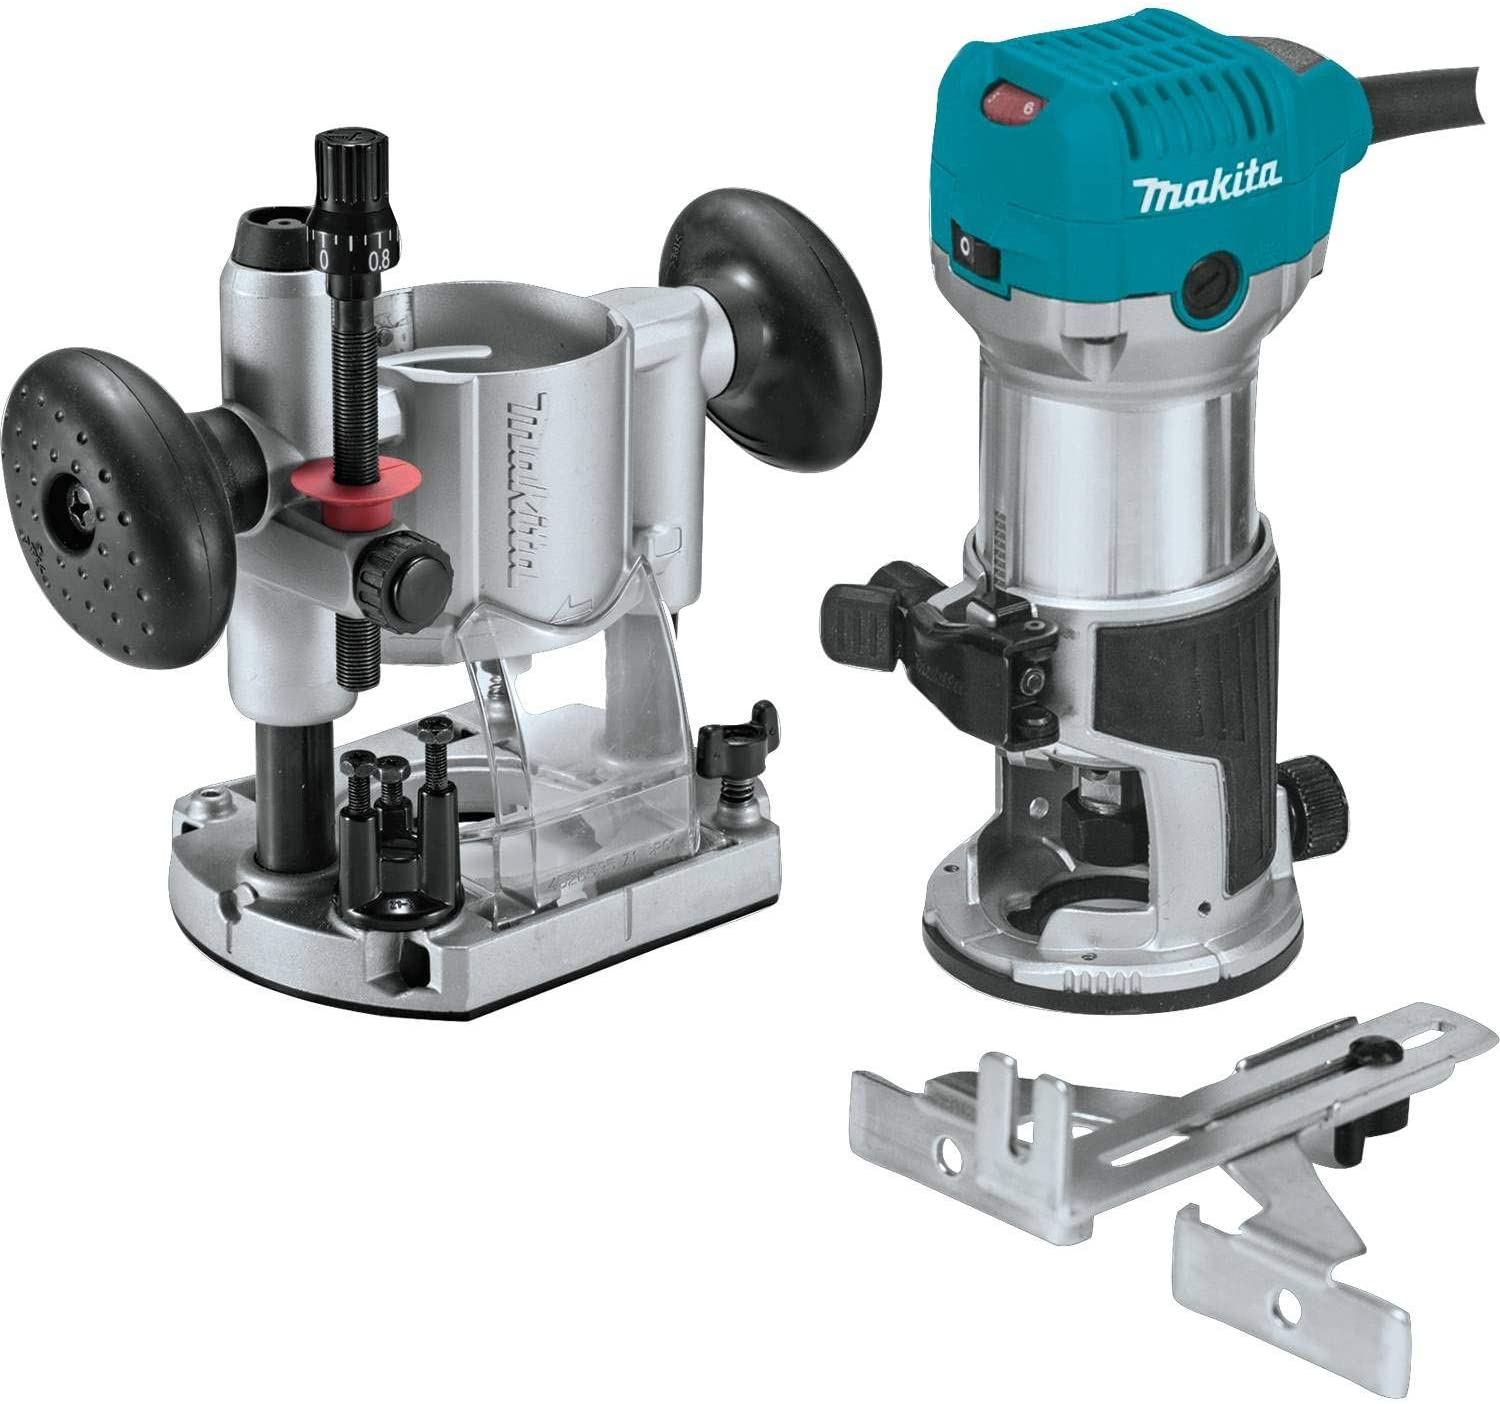 Makita RT0701CX7 1.25HP - Best for the Money